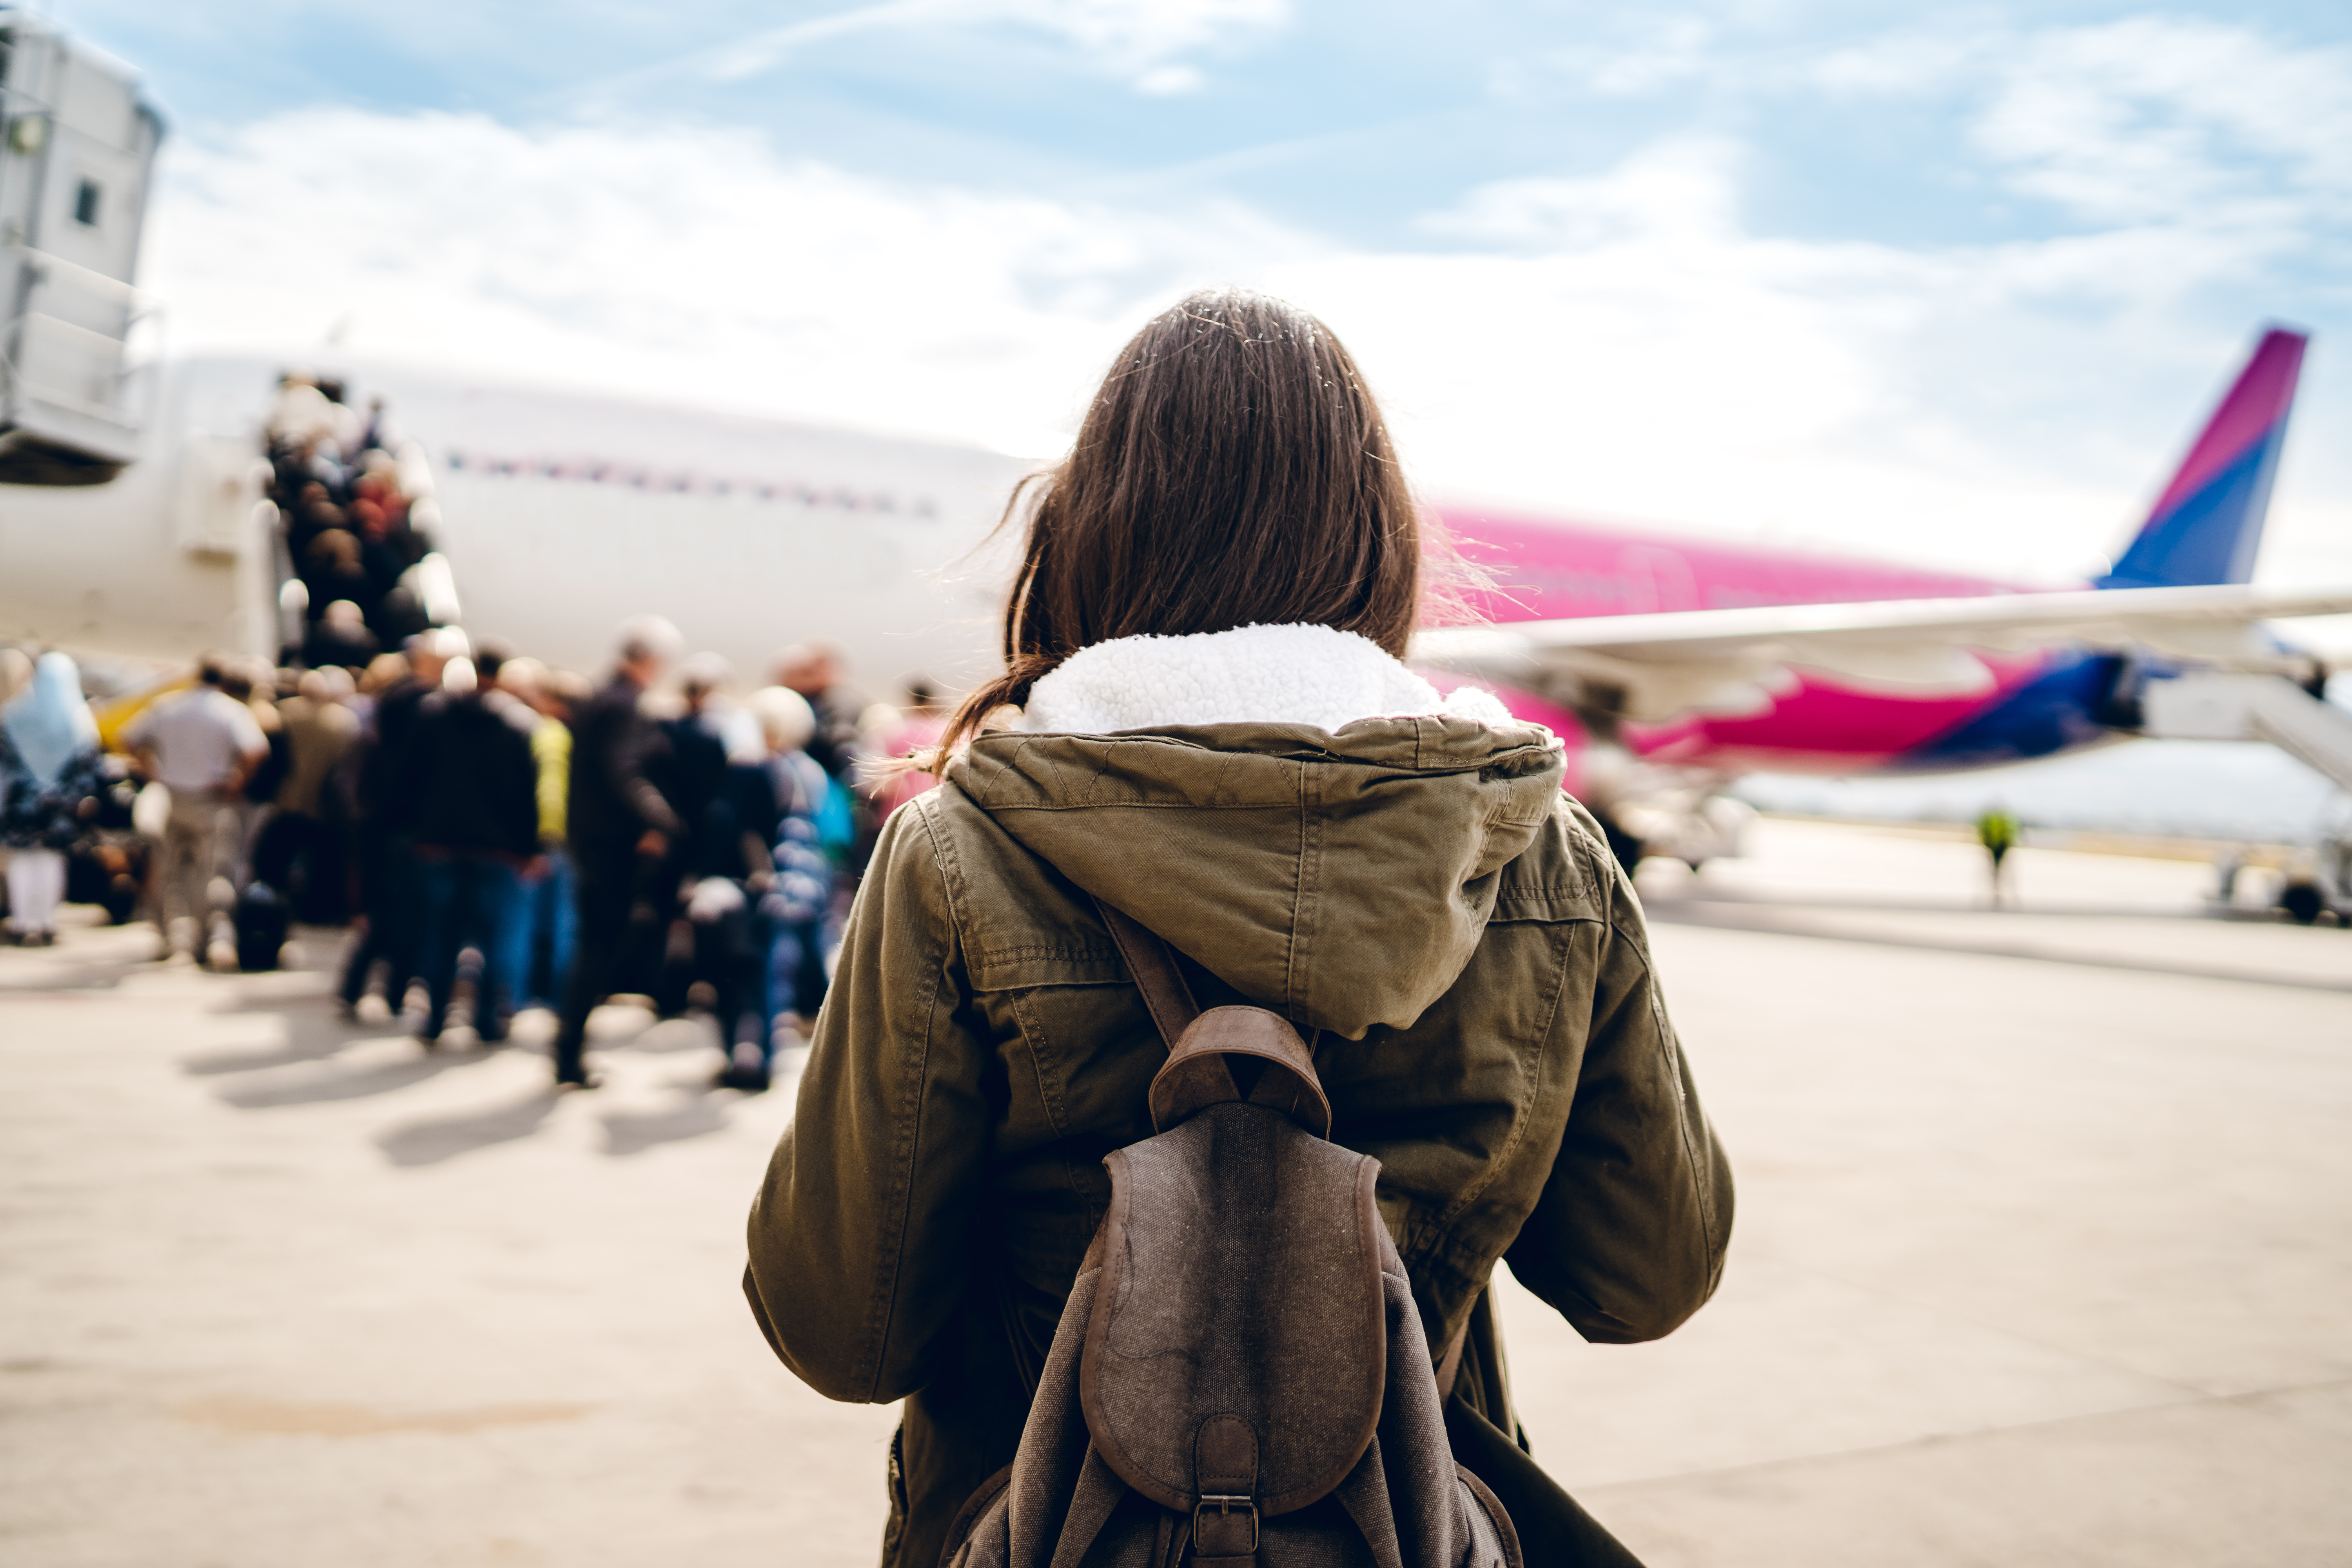 Woman on tarmac lining up to board a plane